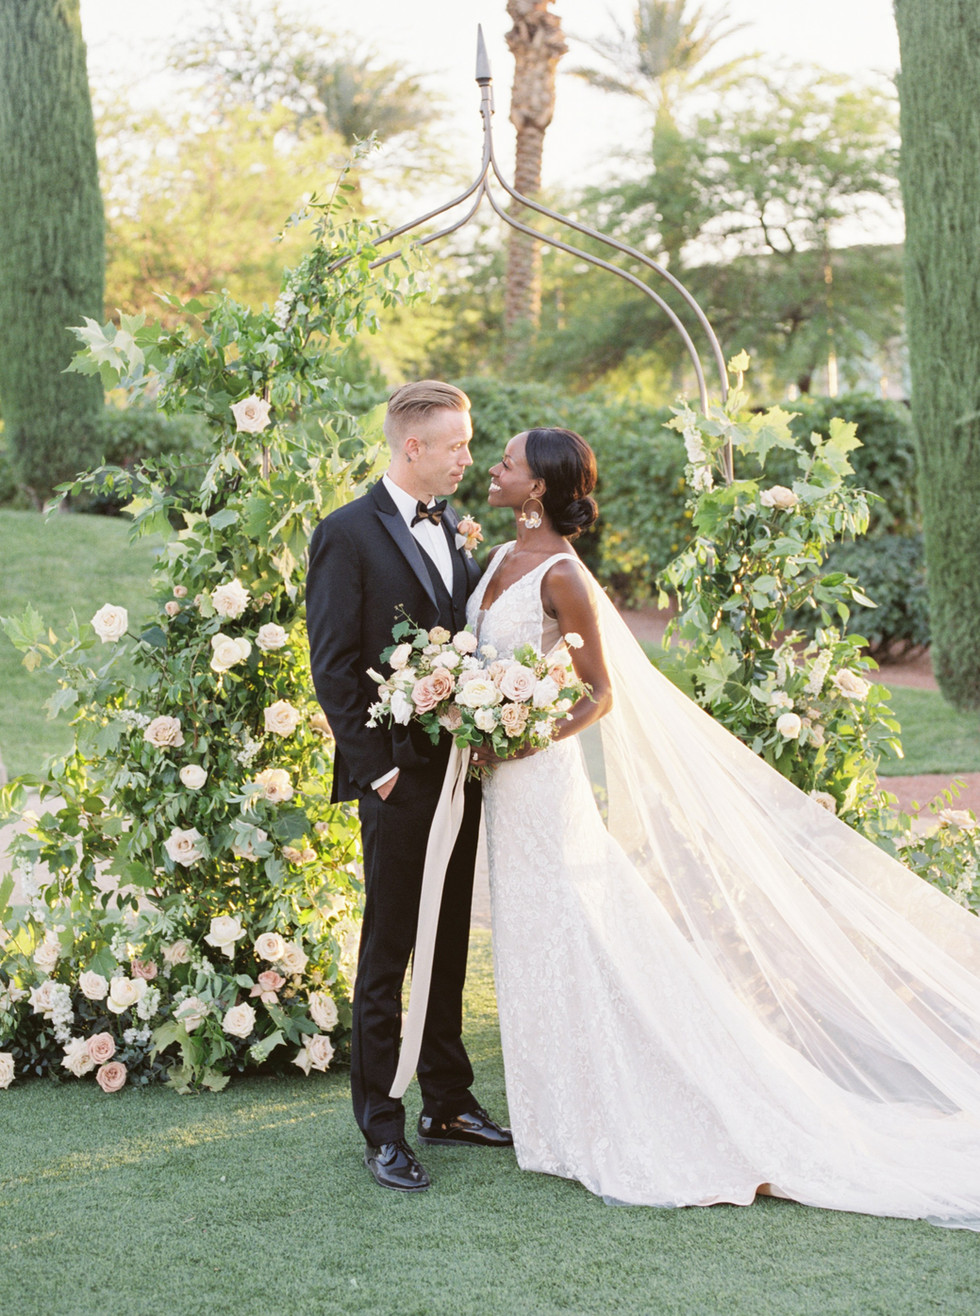 Dusty rose and blush wedding ceremony at Green Valley Ranch Resort. Photo: Lianna Marie